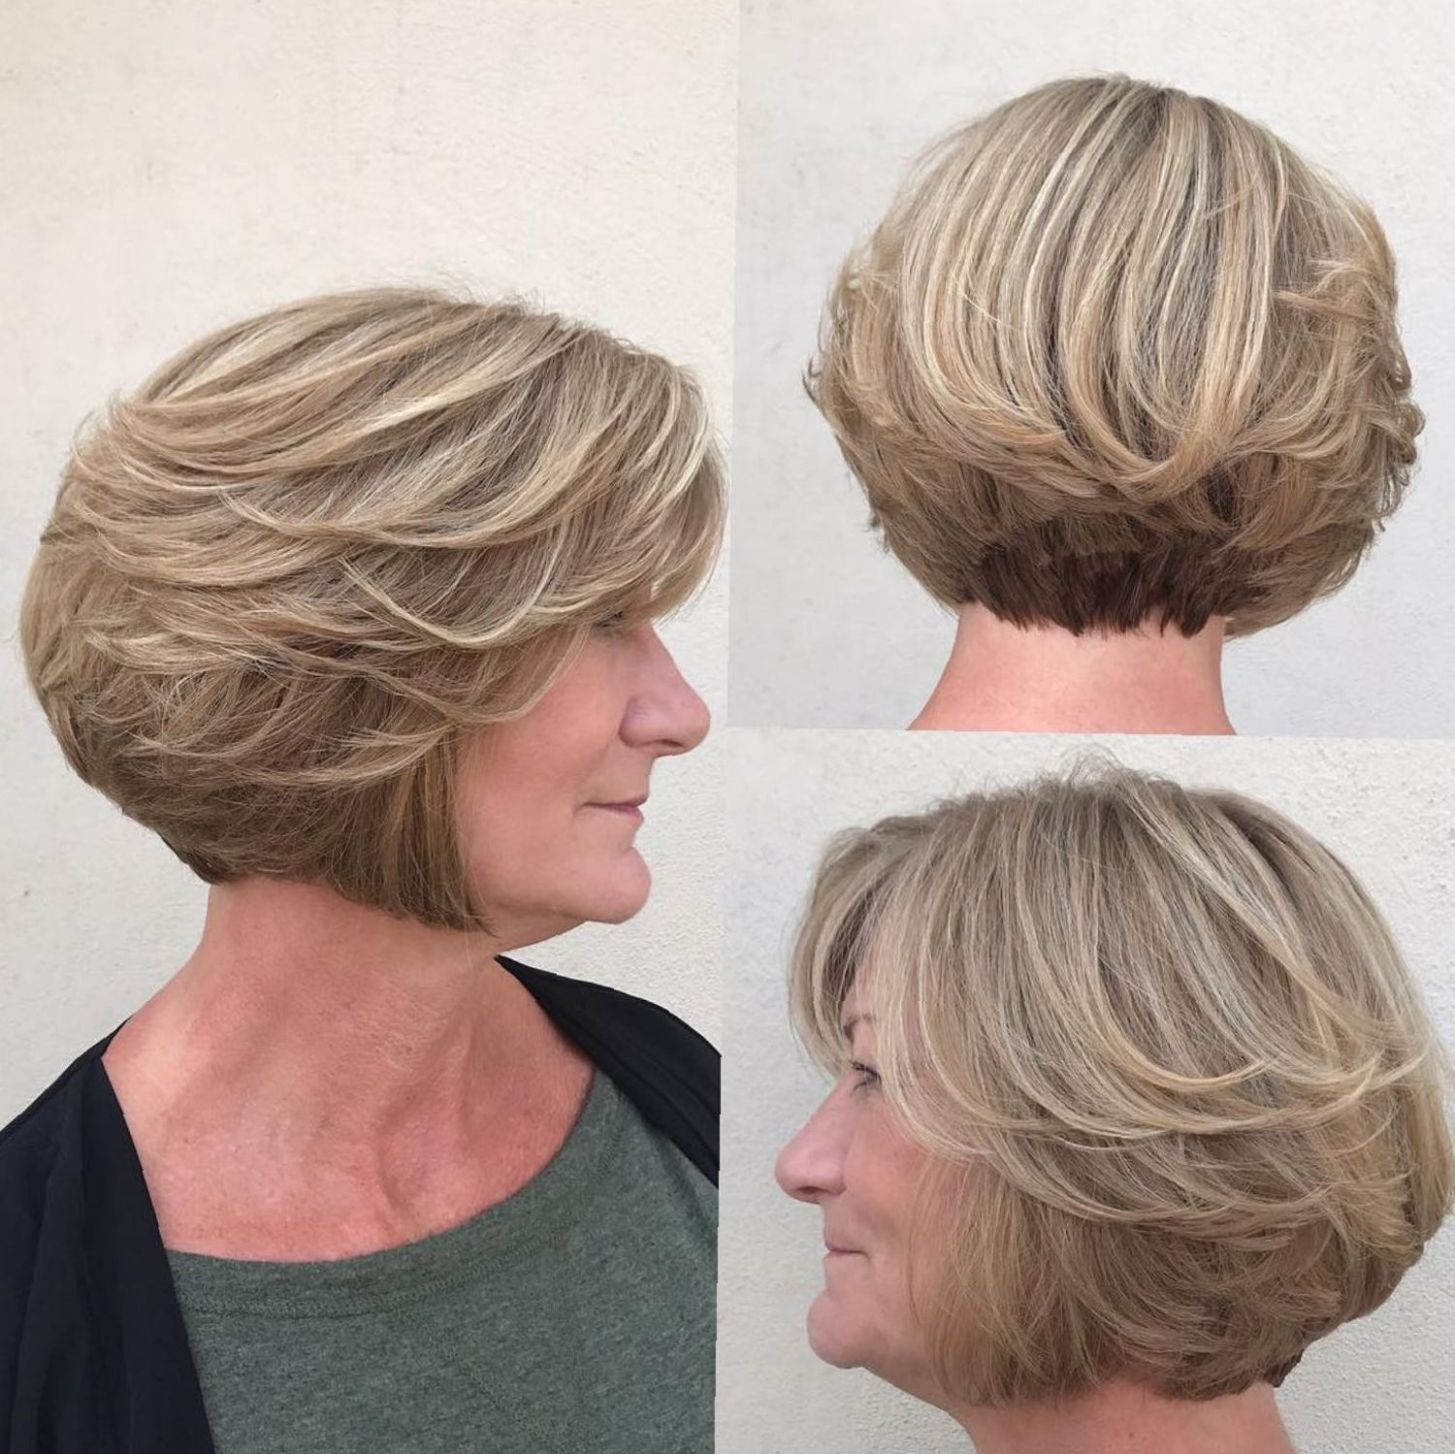 60 Best Hairstyles And Haircuts For Women Over 60 To Suit Any Taste Hair Styles Cool Hairstyles Short Bob Haircuts